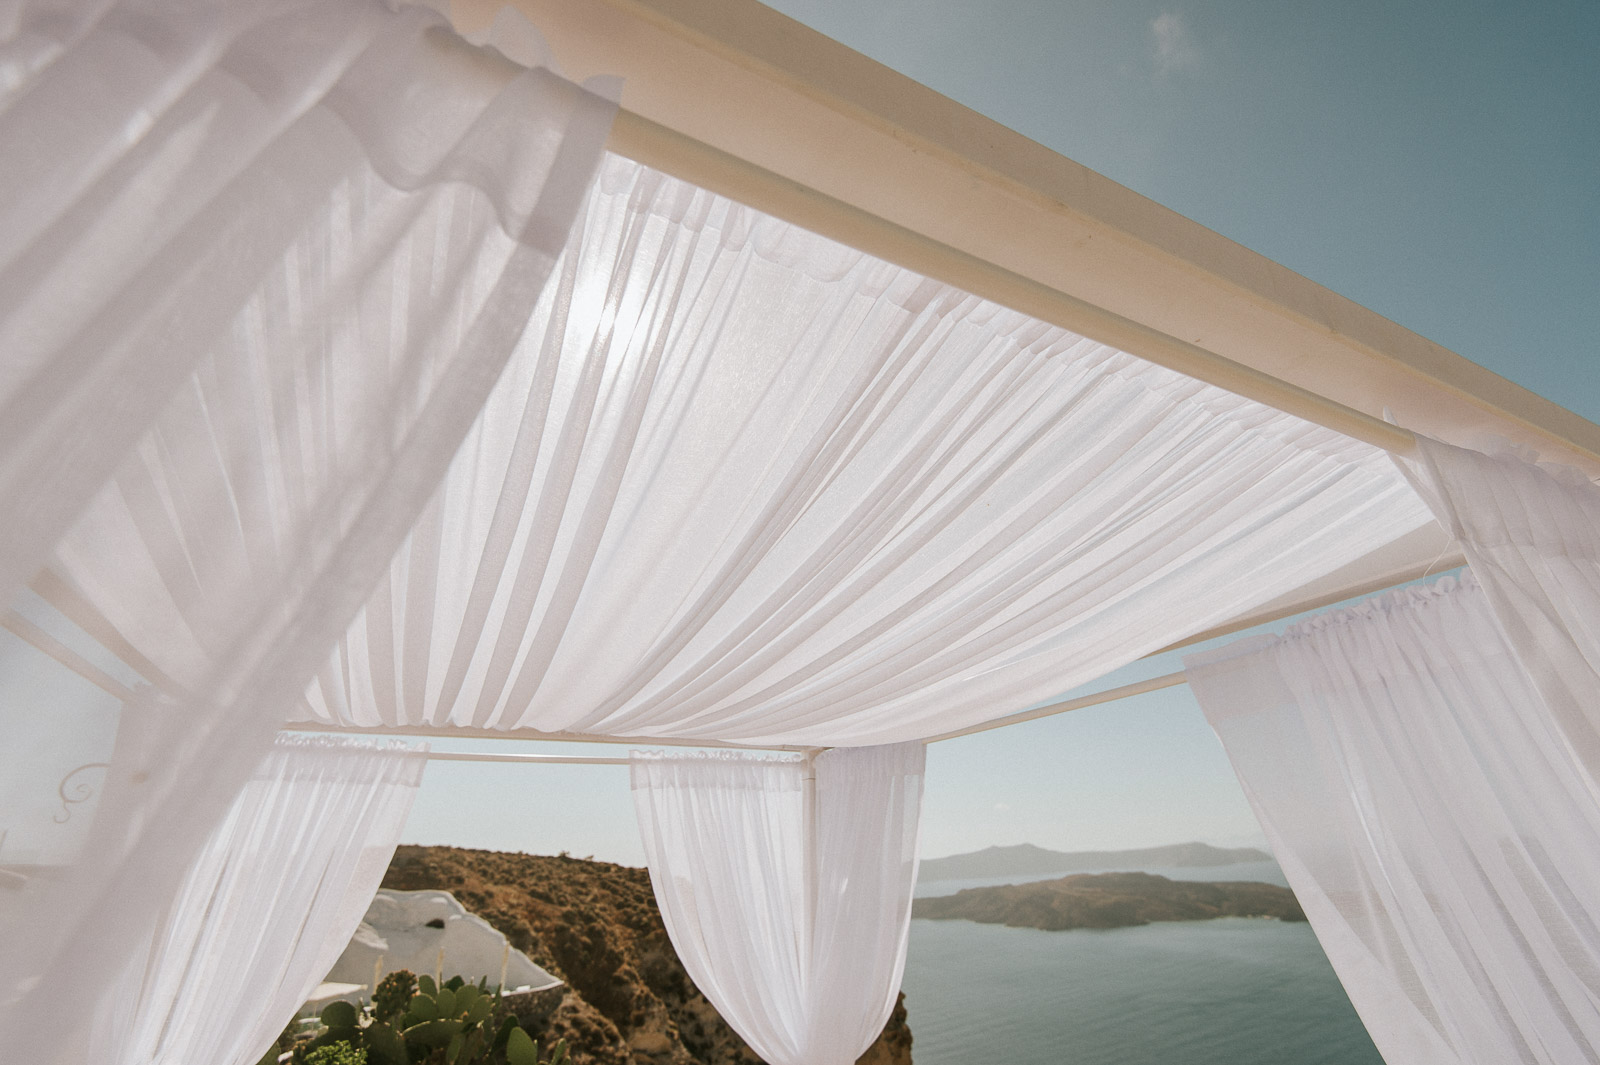 Santorini-Wedding-Photographer-Greece-Destination-Weddings-Mait-Juriado-M&J-Studios-050